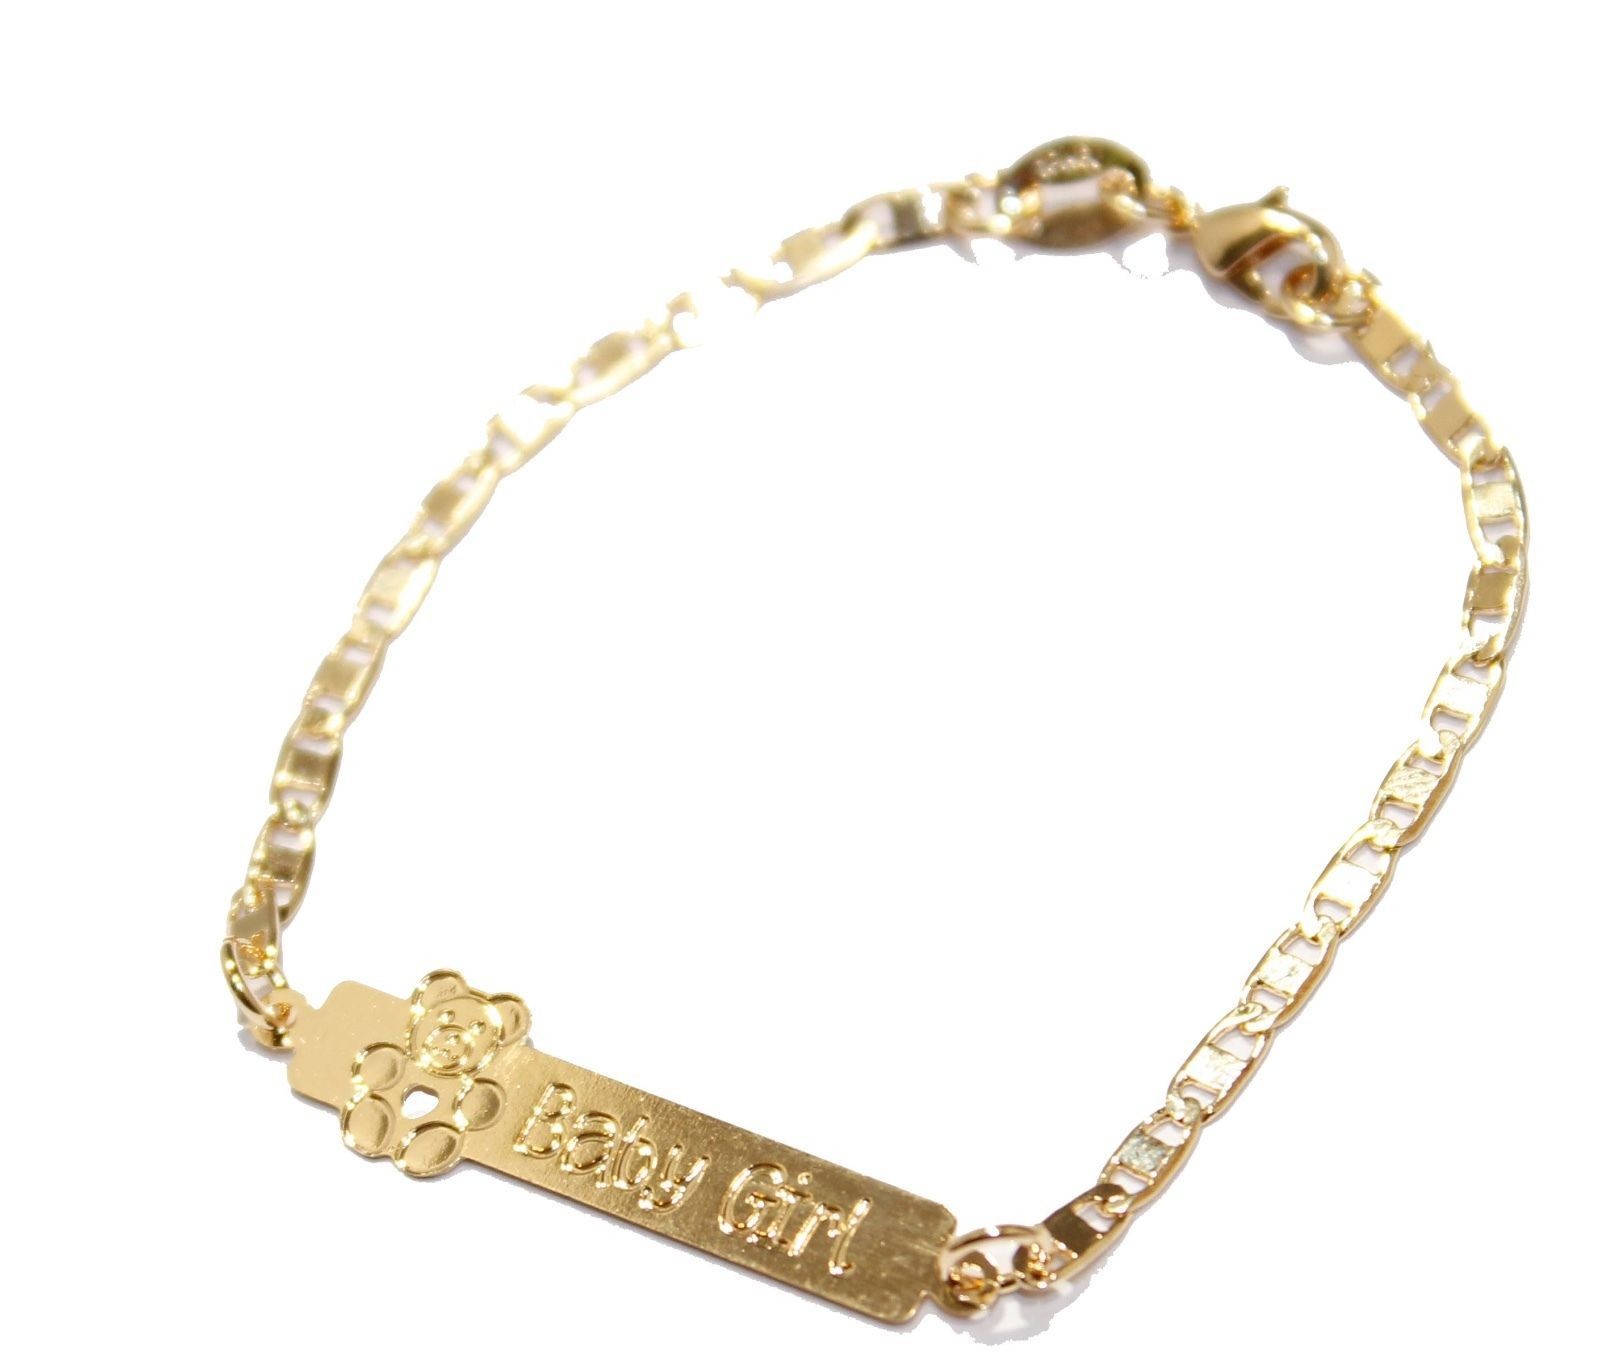 Teddy Bear Girl Tag Id Bracelet 18k Gold Plated Bracelet 6 Baby Id Bracelet Gold Plated Bracelets Kids Bracelets Teddy Bear Girl